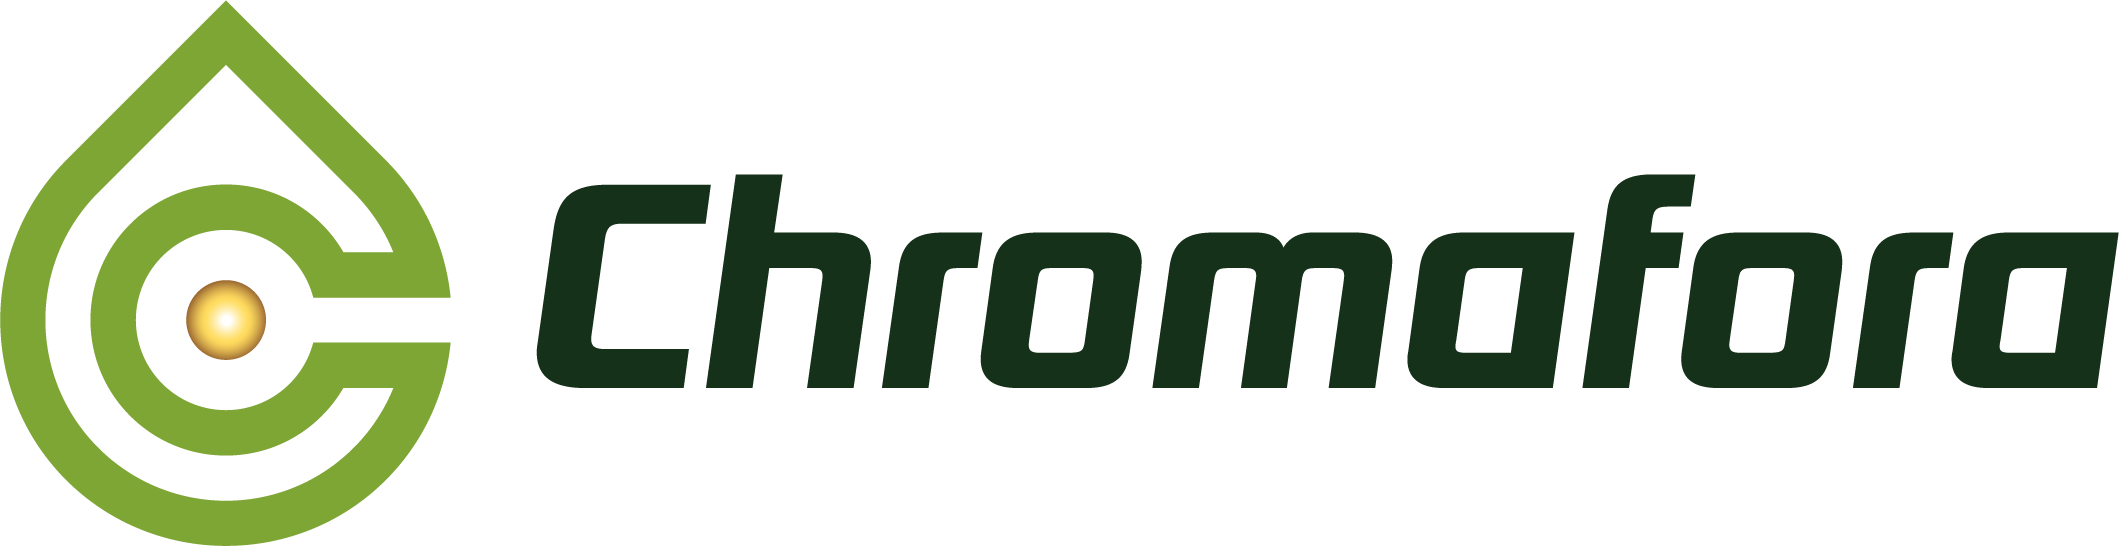 Chromafora_logo_laying